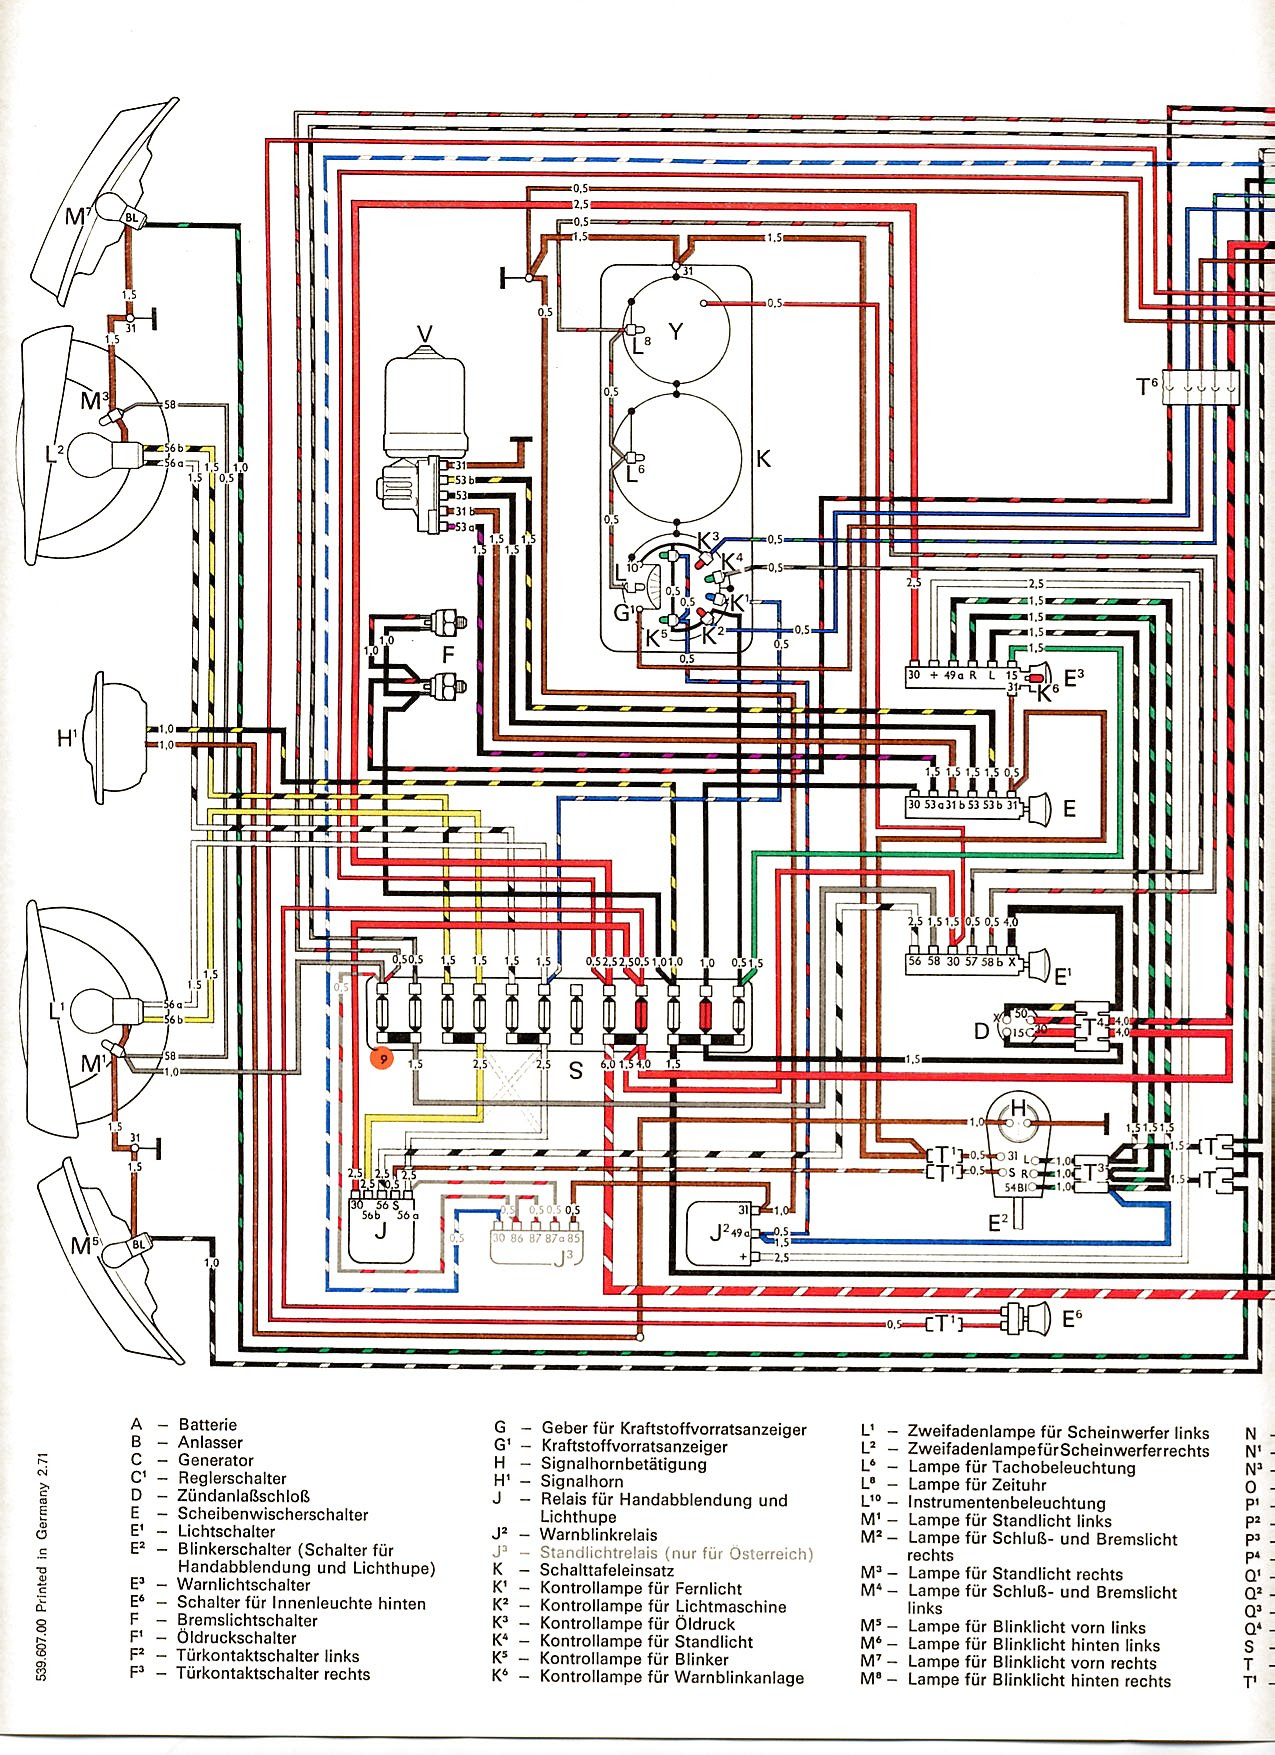 1972 Vw Super Beetle Wiring Diagram Wiring Diagram View A View A Zaafran It